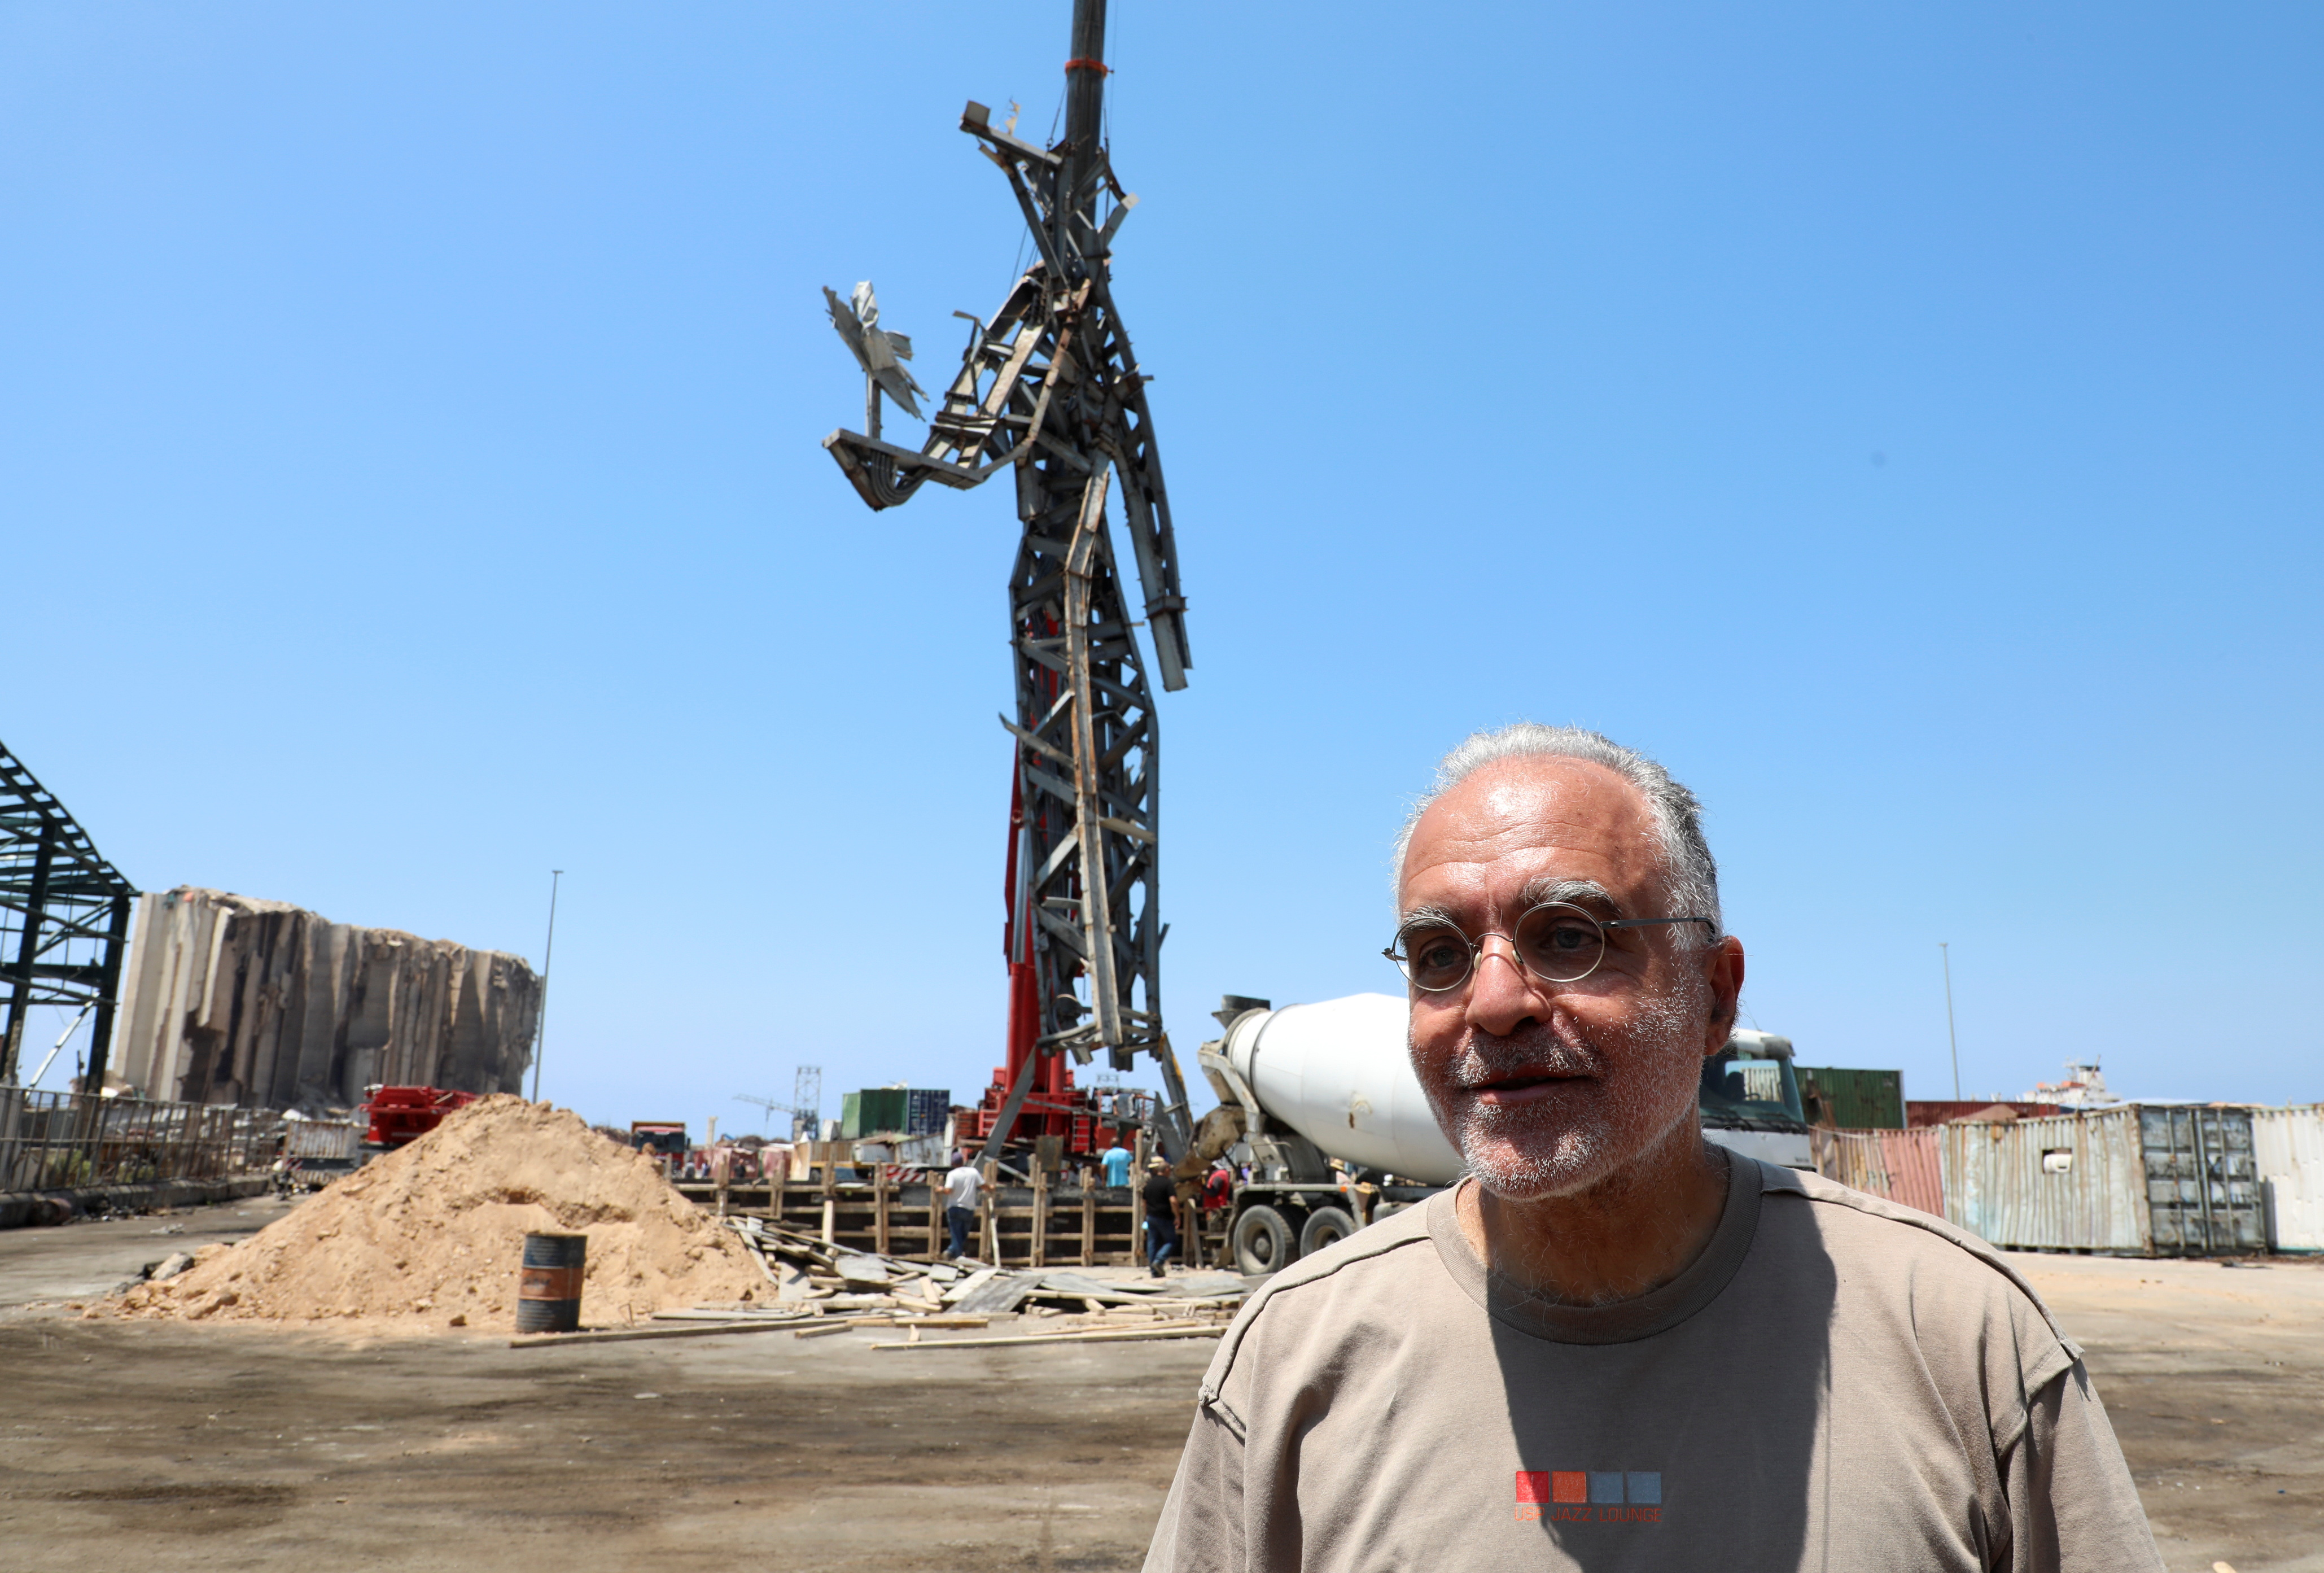 Lebanese architect Nadim Karam attends an interview with Reuters at Beirut's port in Lebanon, July 27, 2021. Picture taken July 27, 2021. REUTERS/Mohamed Azakir